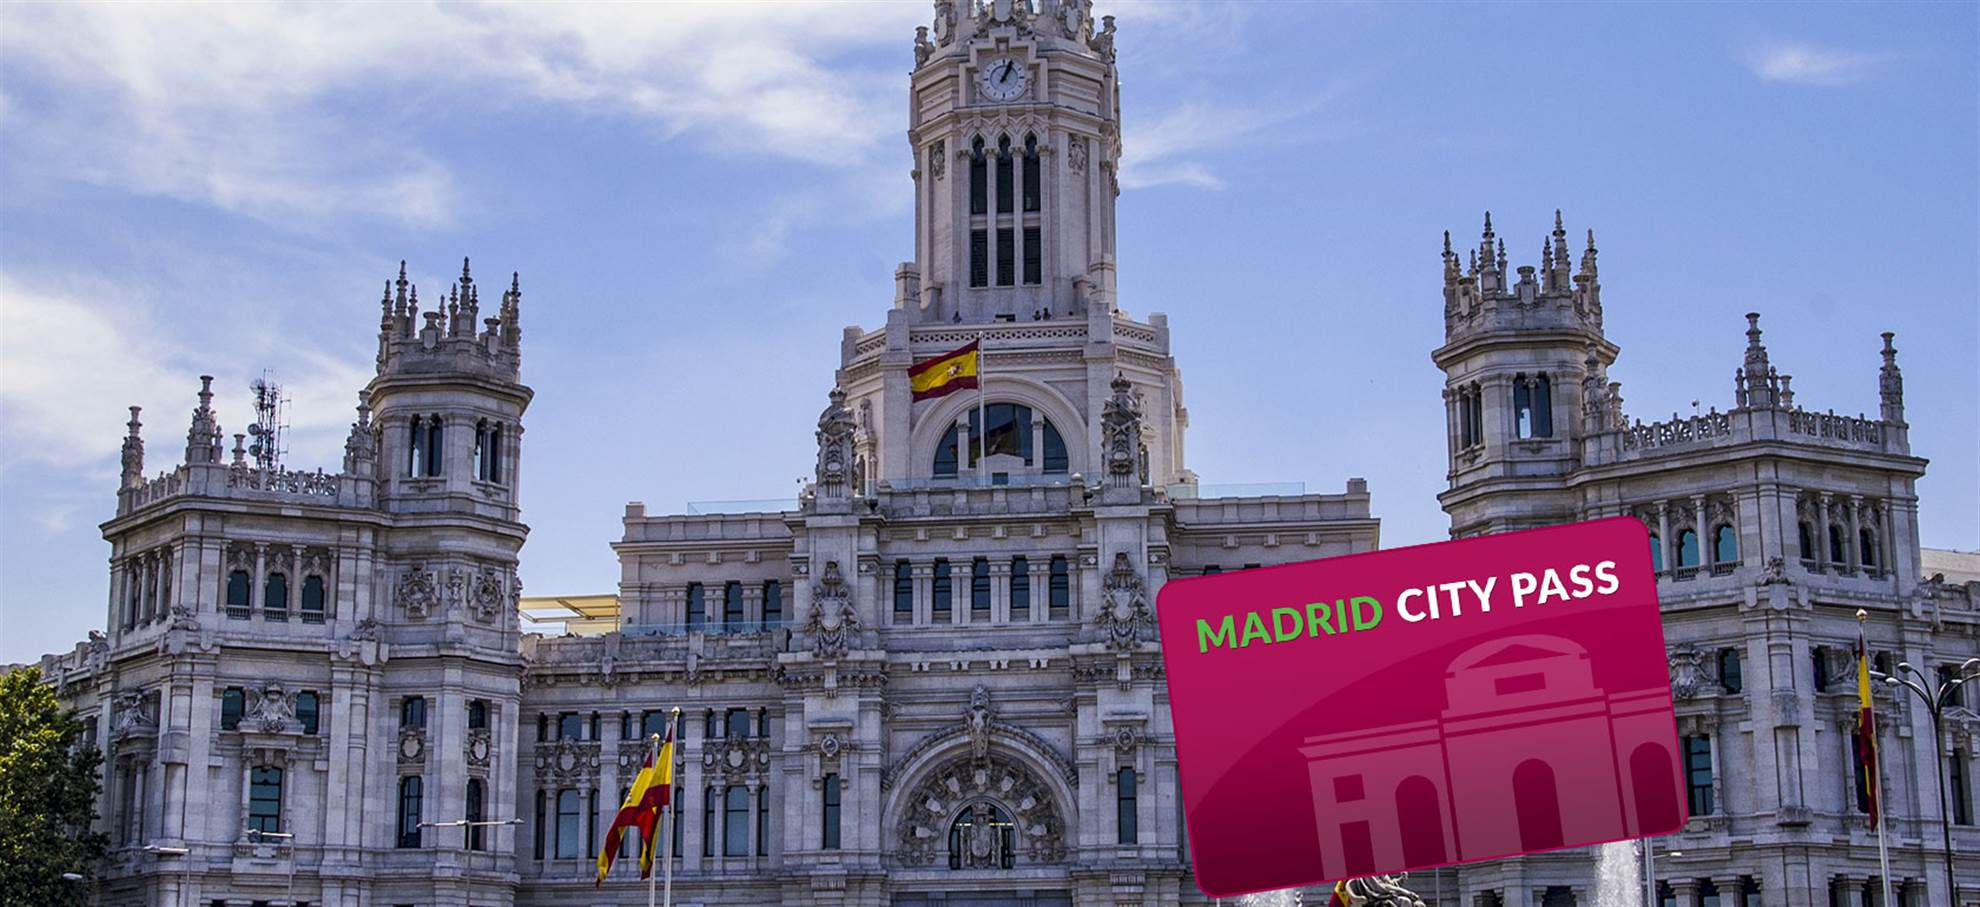 Madrid City Pass: Includes Metro Card, Airport Transfer and Royal Palace or Prado Museum!